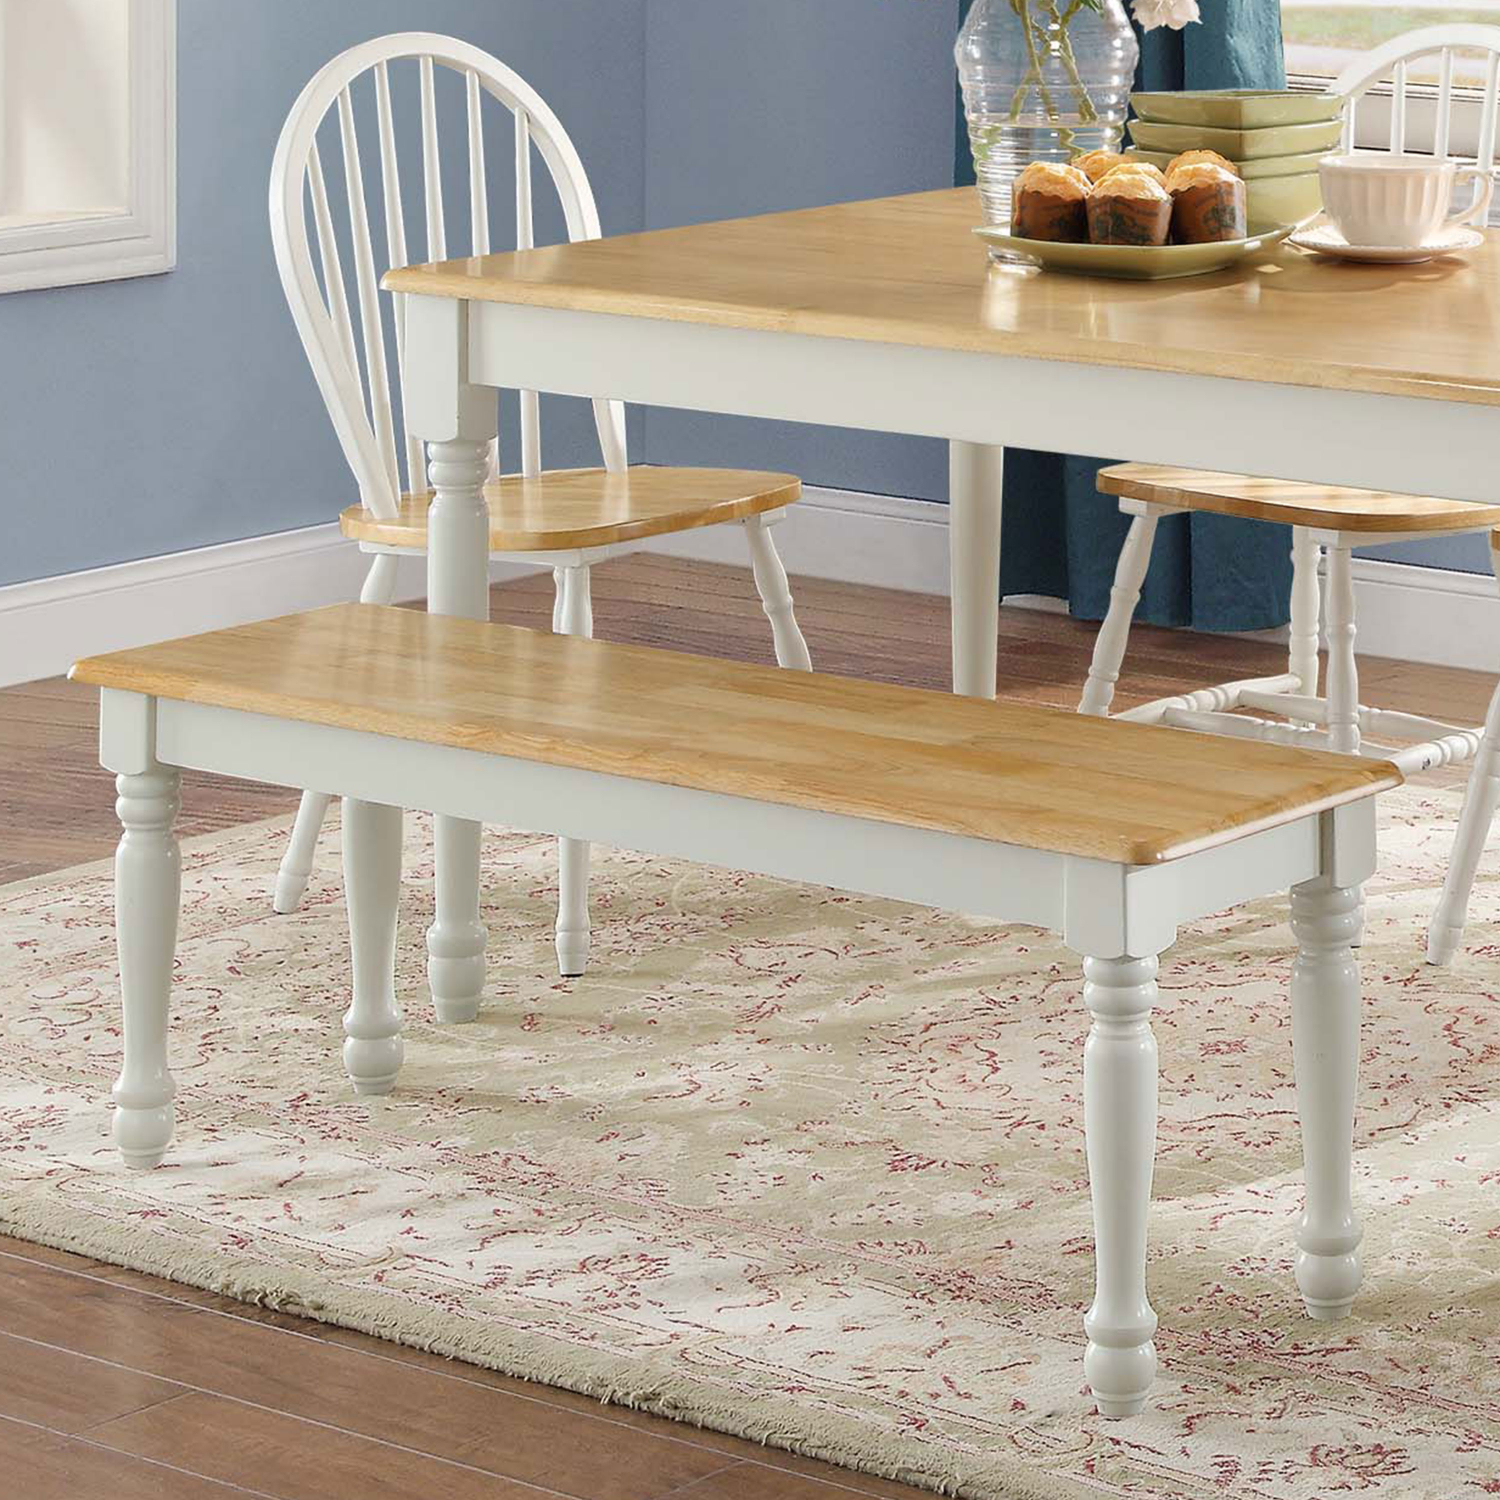 Details About Solid Wood Dining Bench Autumn Lane Kitchen Dining Room  Furniture Two Toned New